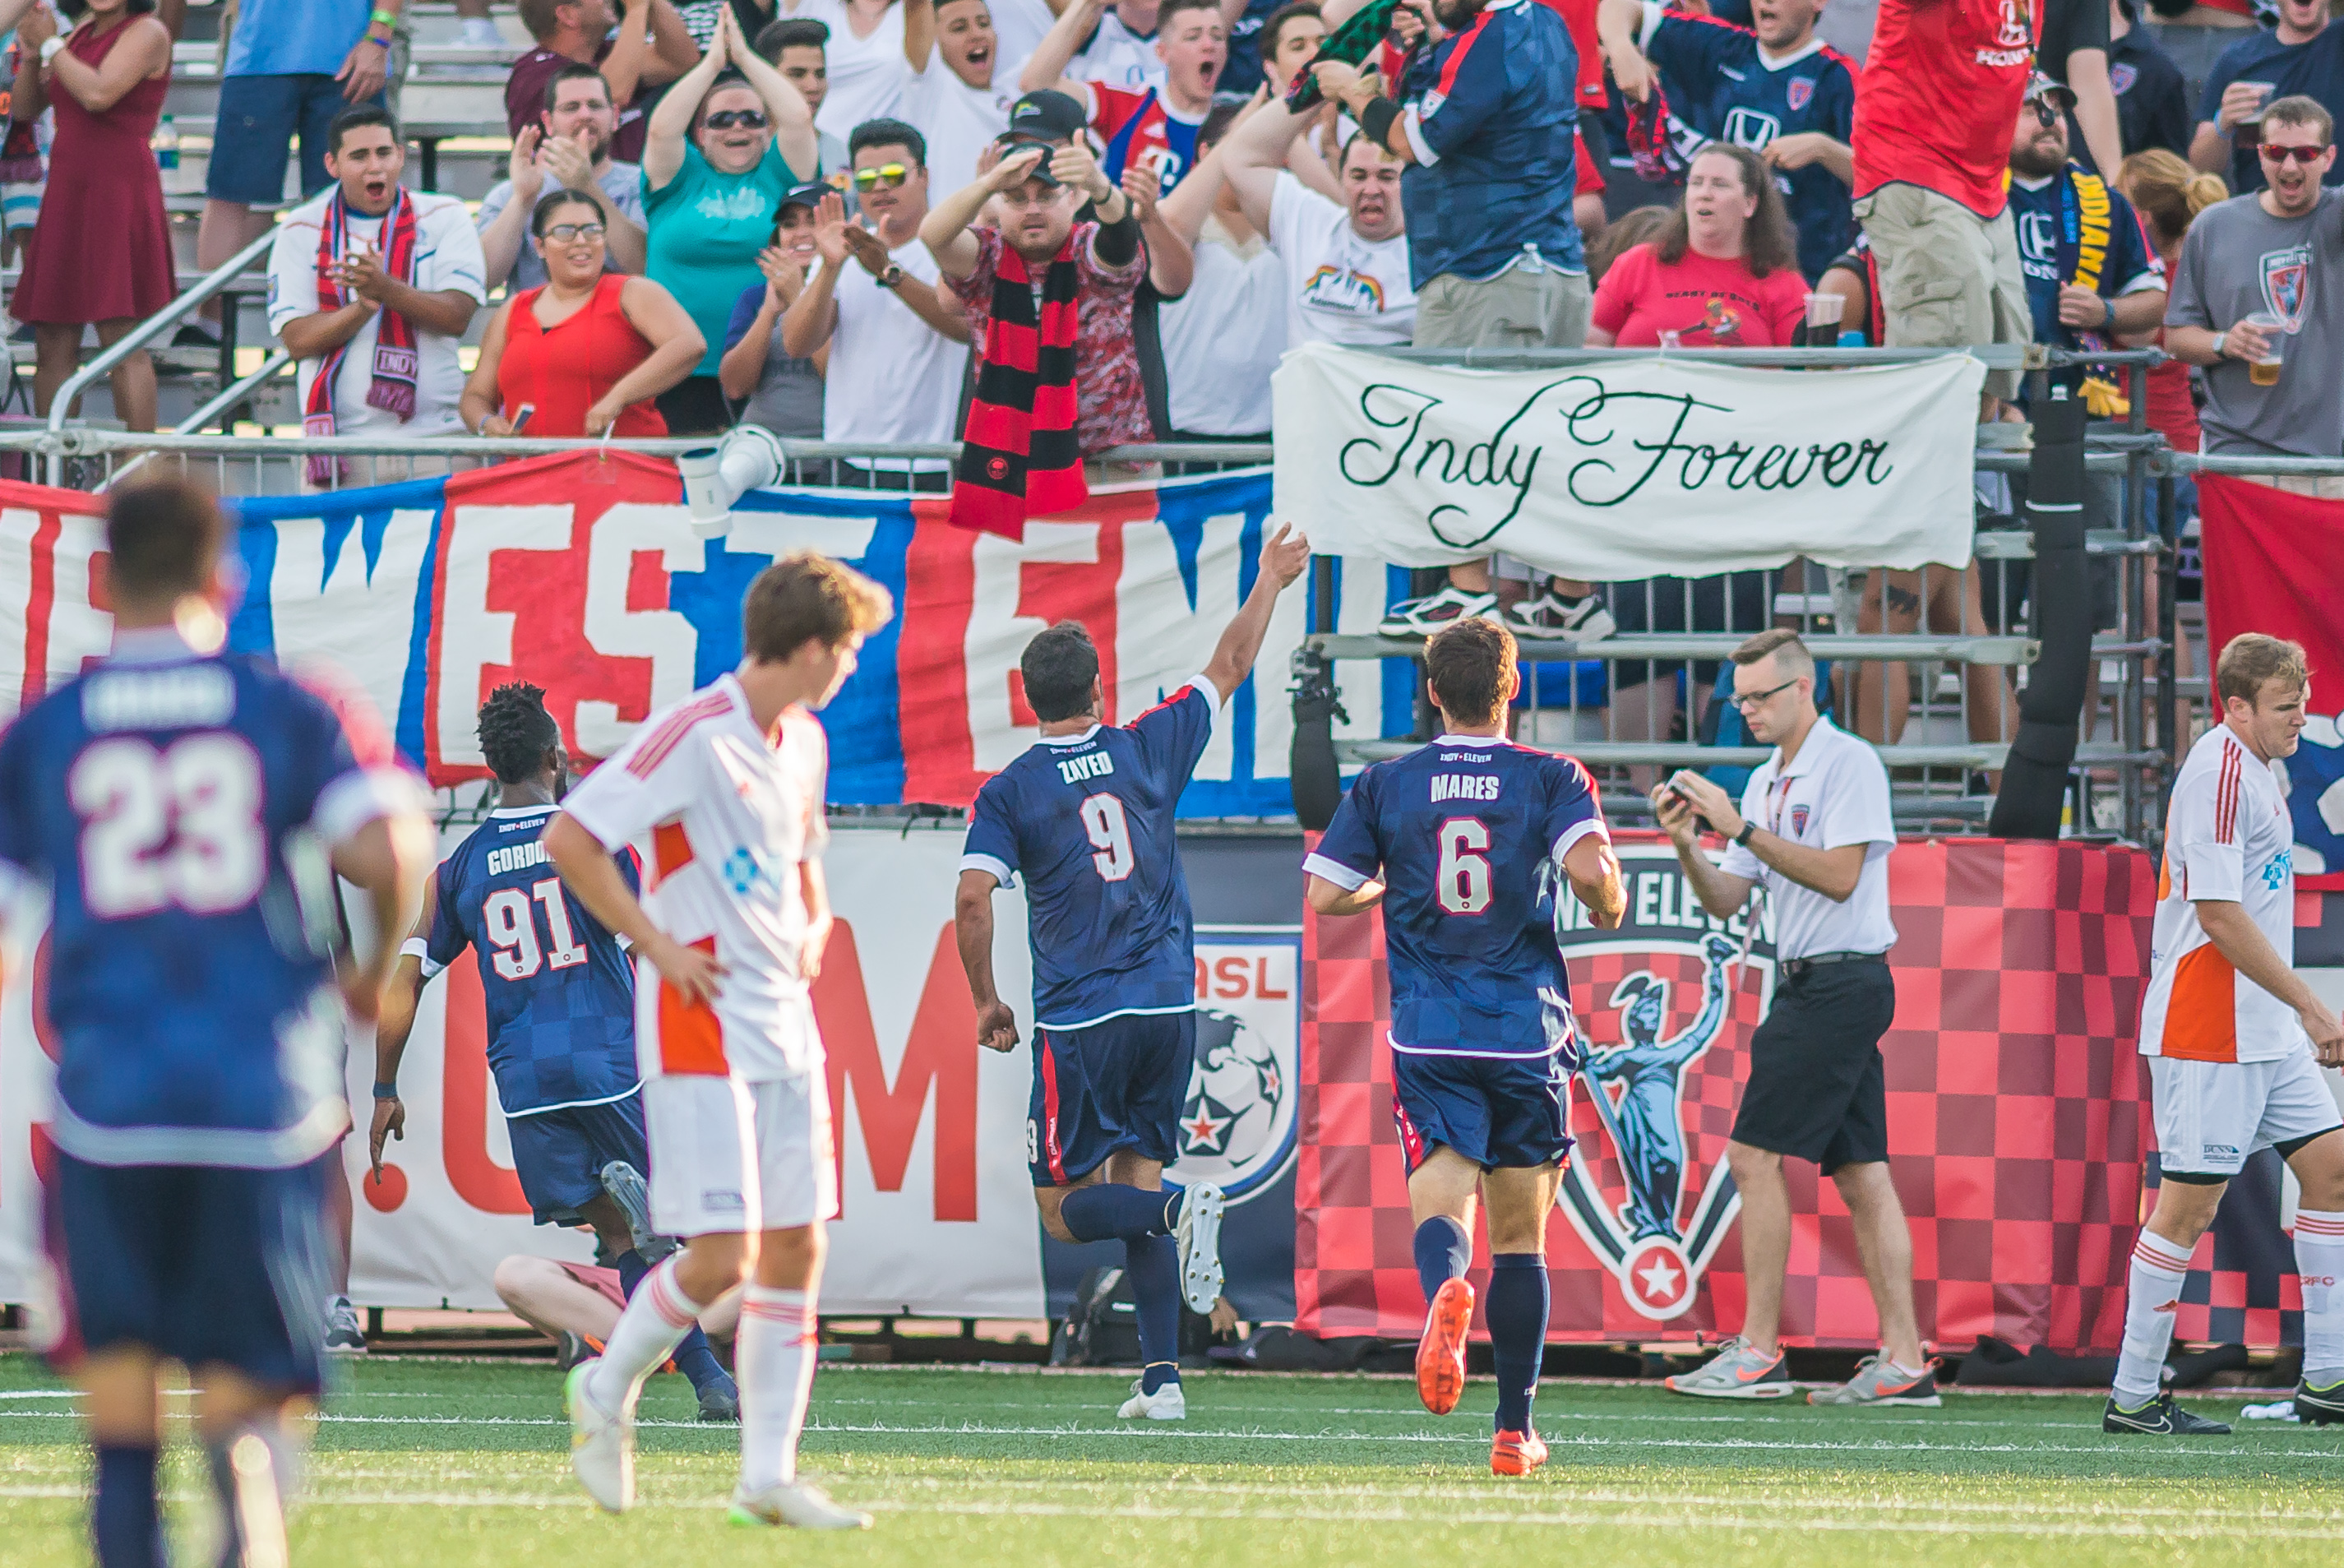 INDvCAR photo by Indy Eleven